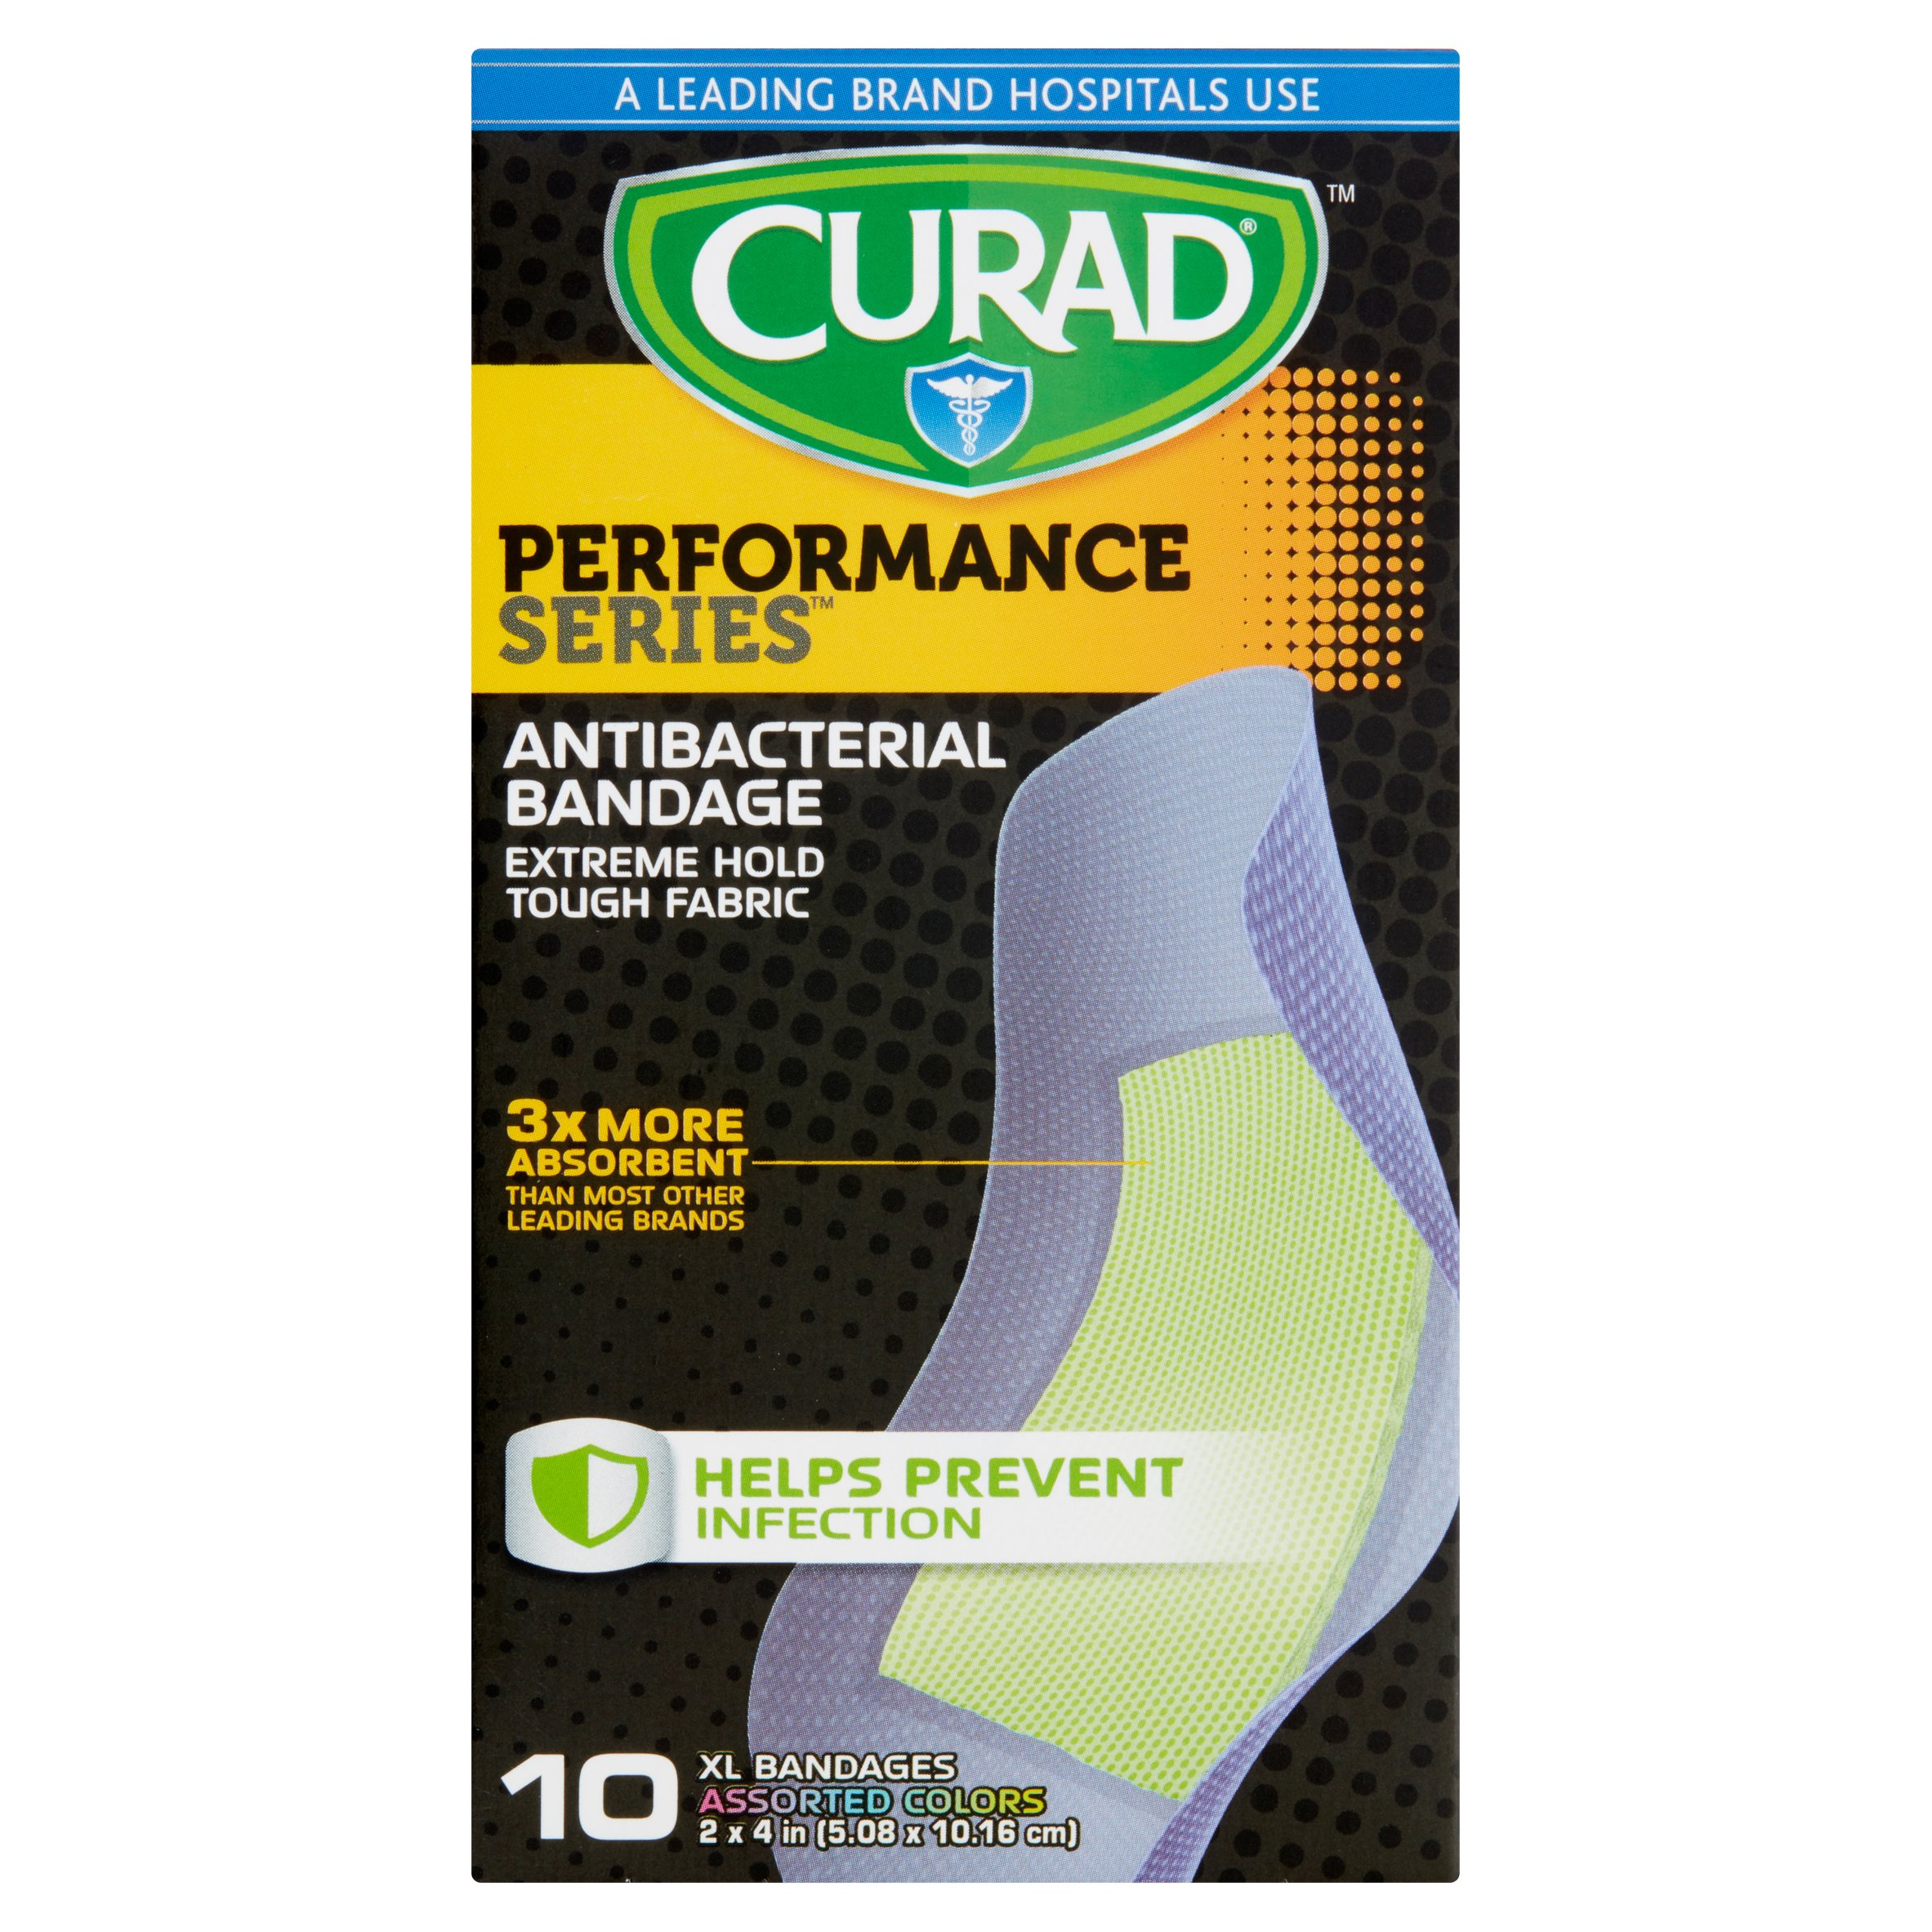 Curad Performance Series XL Bandages, 10 count